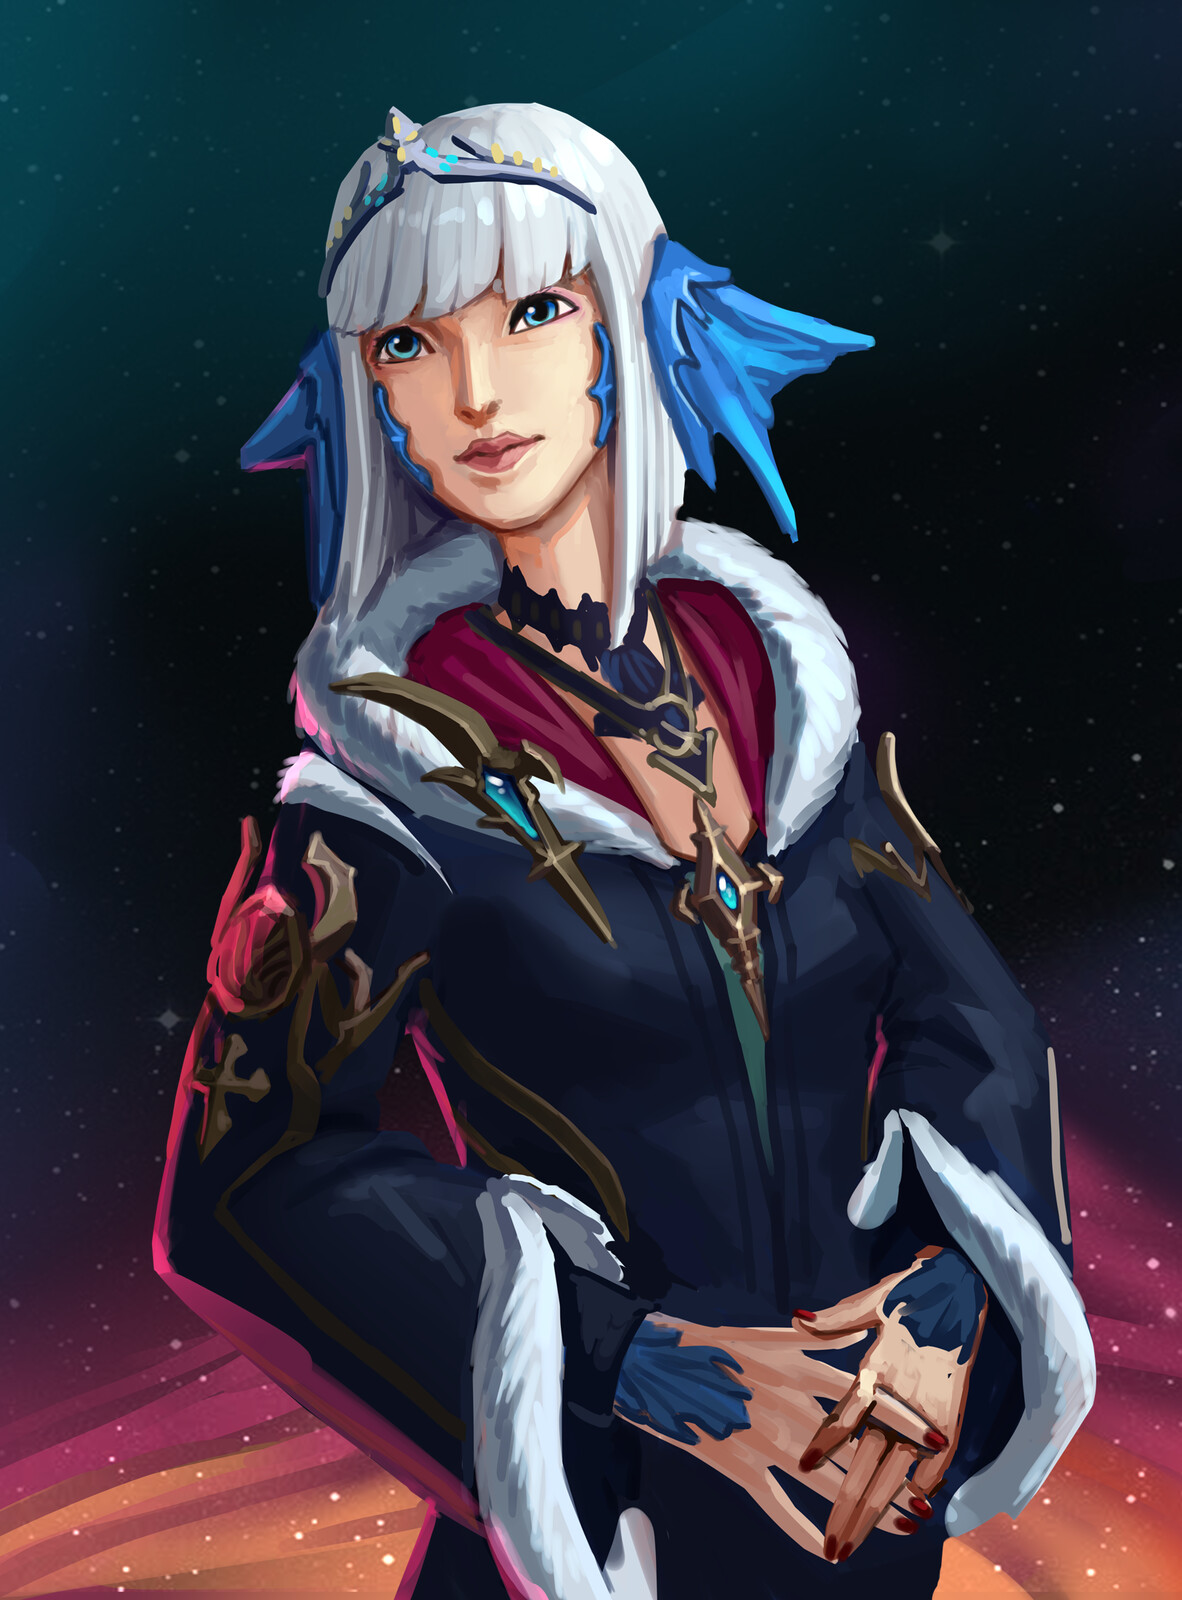 Final fantasy character commission